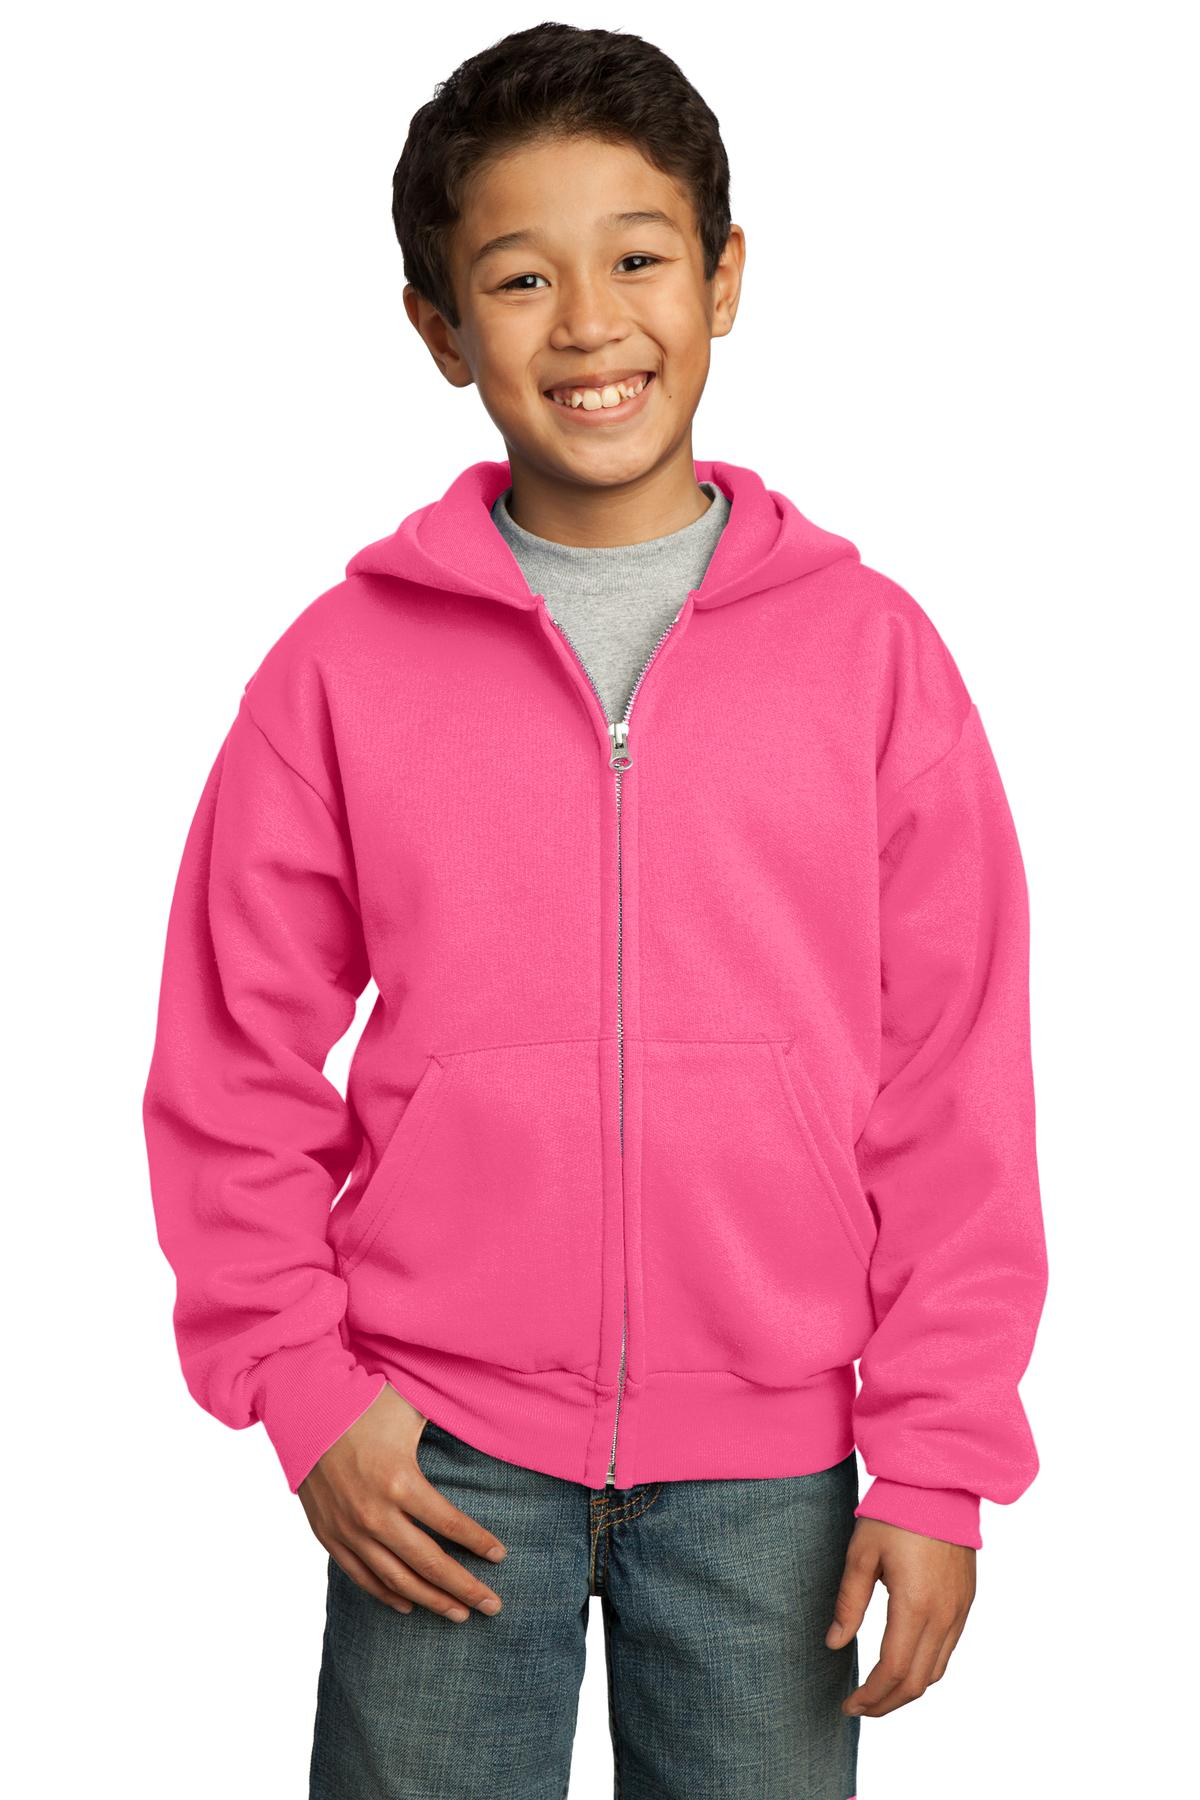 Port & Company ®  - Youth Core Fleece Full-Zip Hooded Sweatshirt.  PC90YZH - Neon Pink